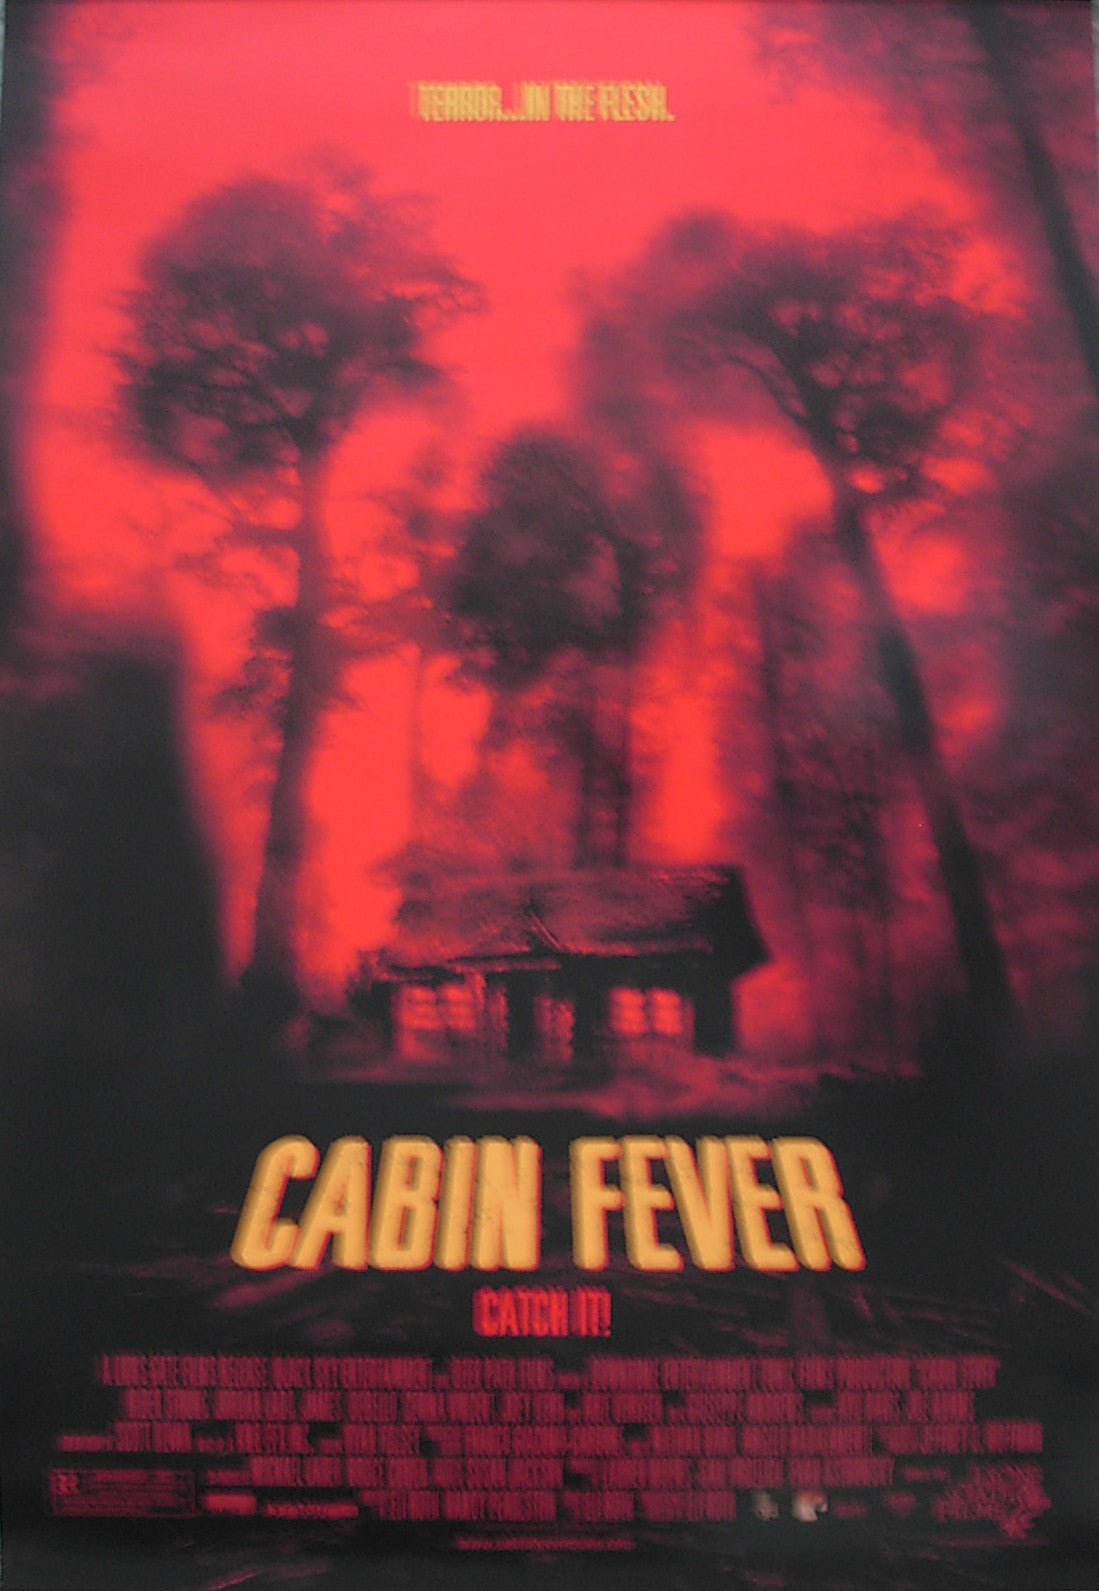 CABIN FEVER - US small promo poster